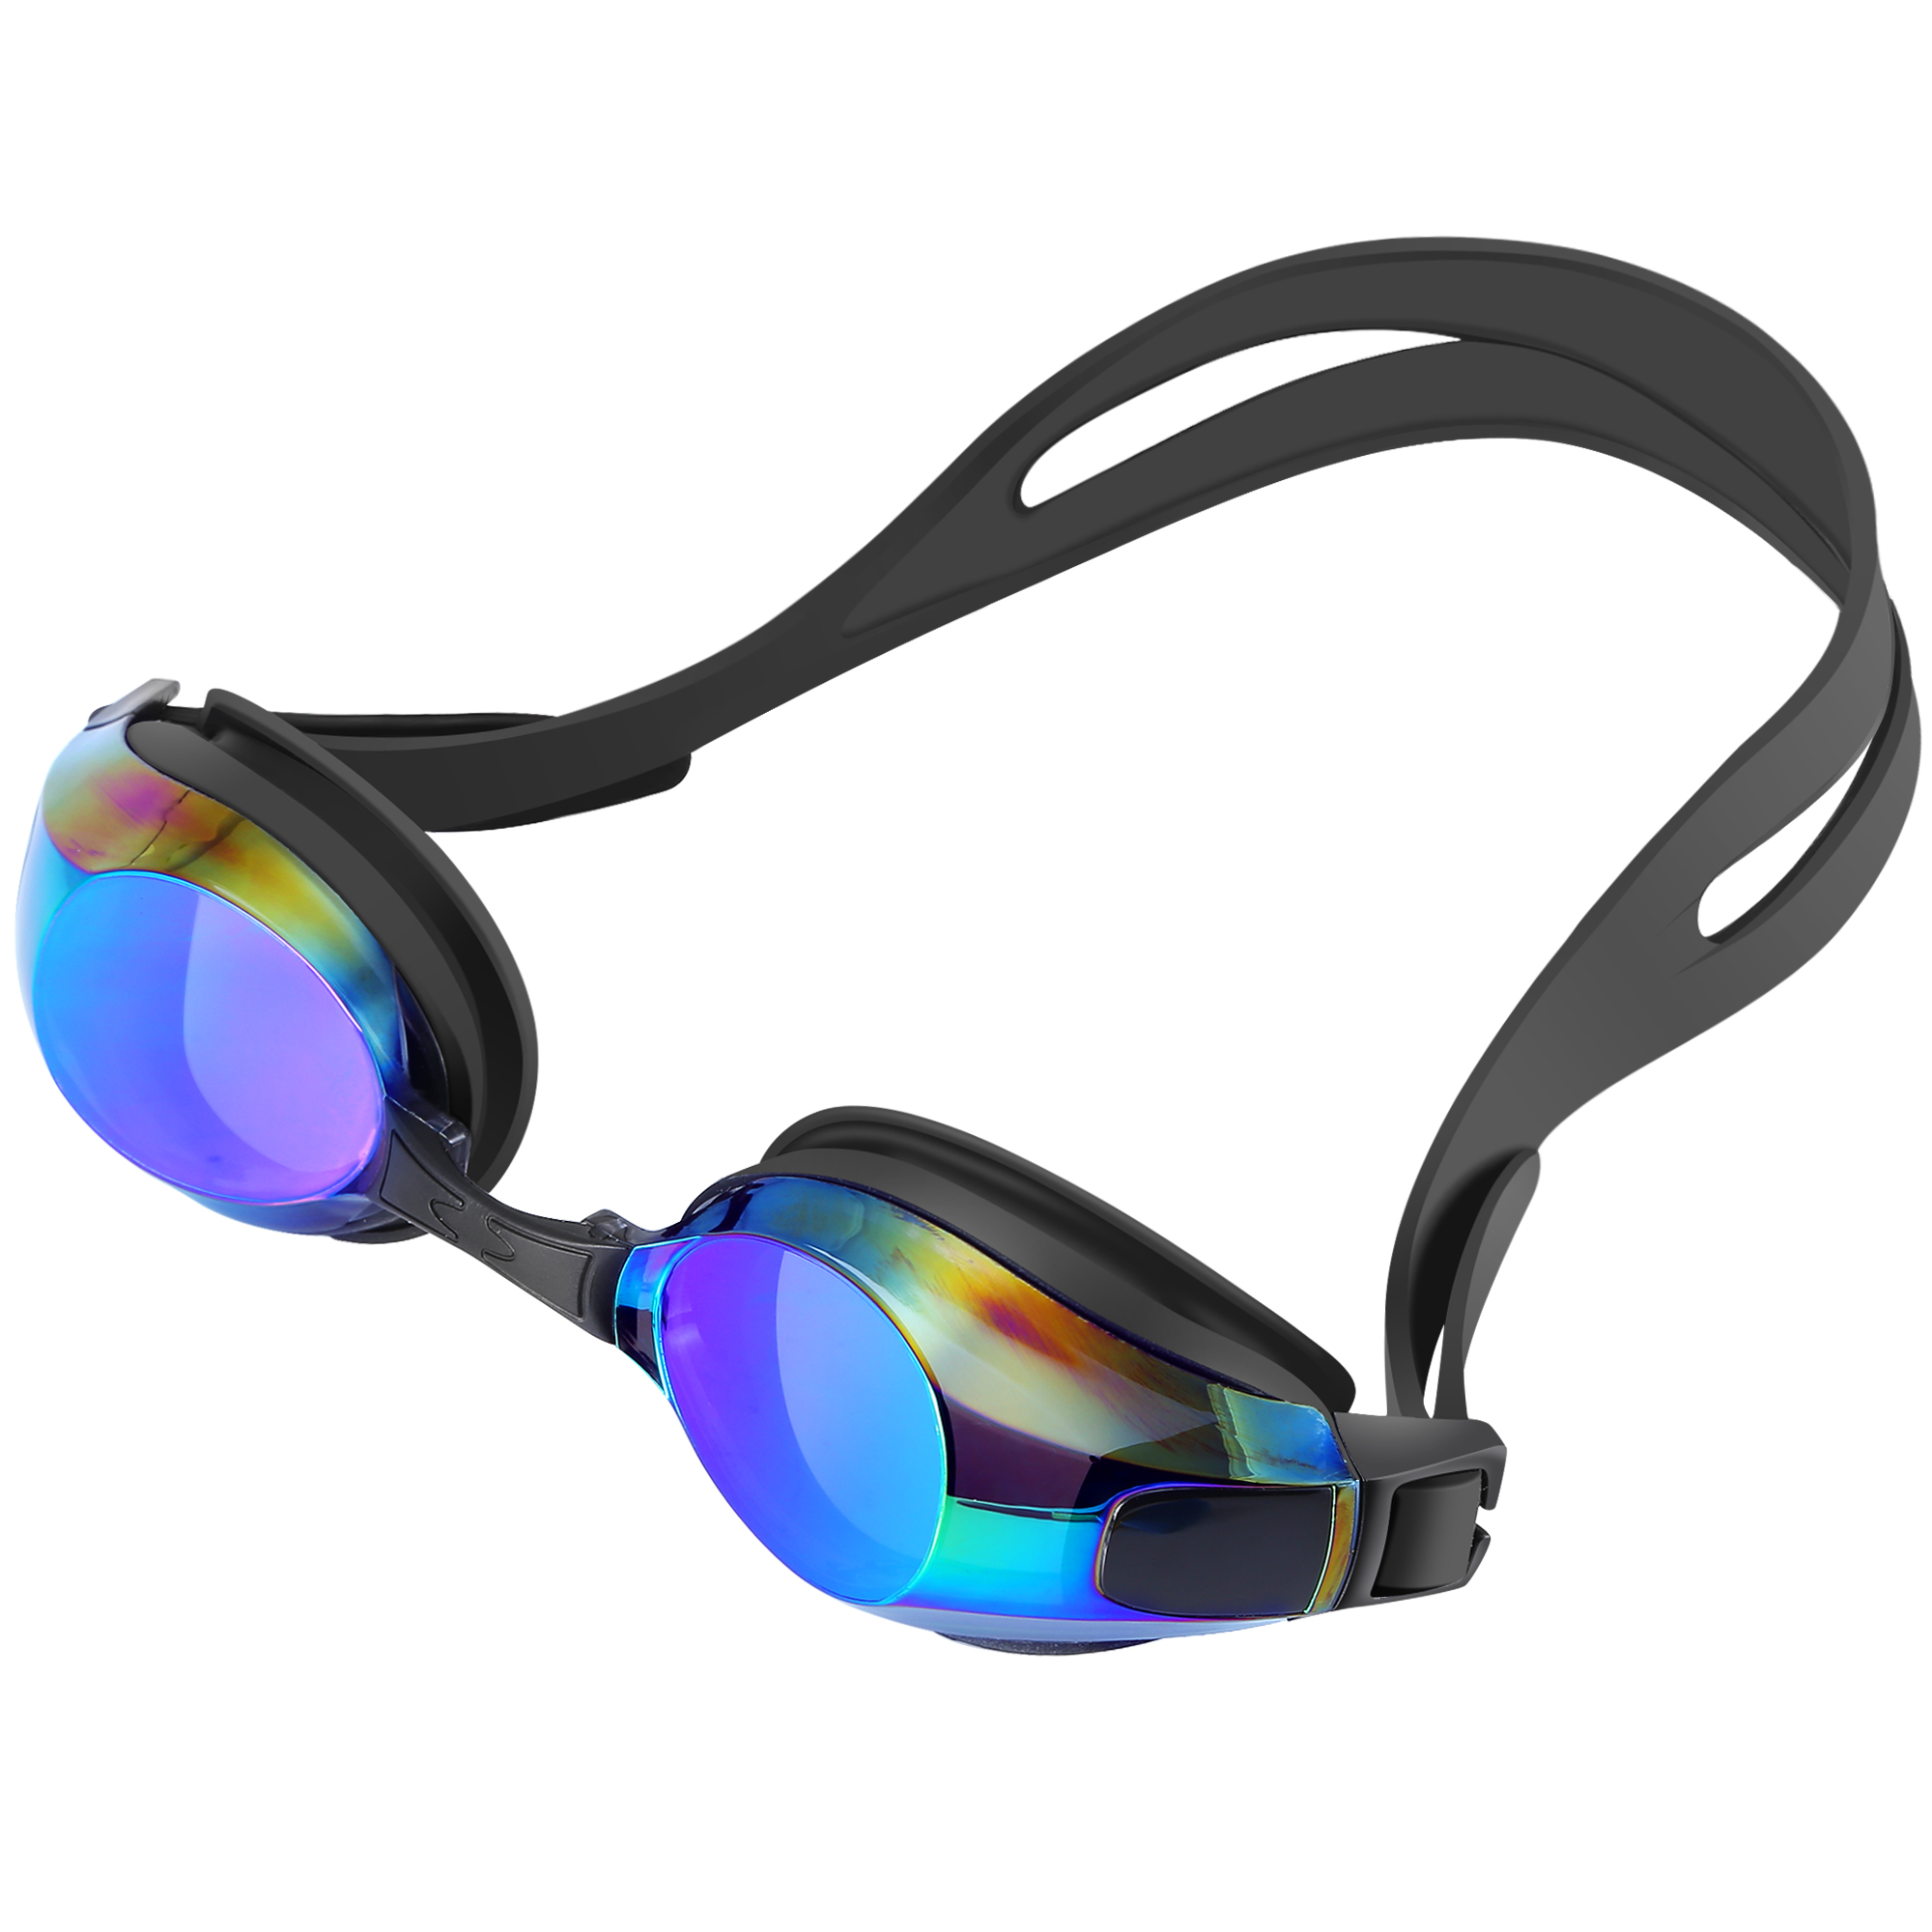 IPOW Swim Goggles, Anti-fog UV Protection Mirror Coated Swimming Goggles Glasses for Adult Men Women Youth and Kids... by IPOW